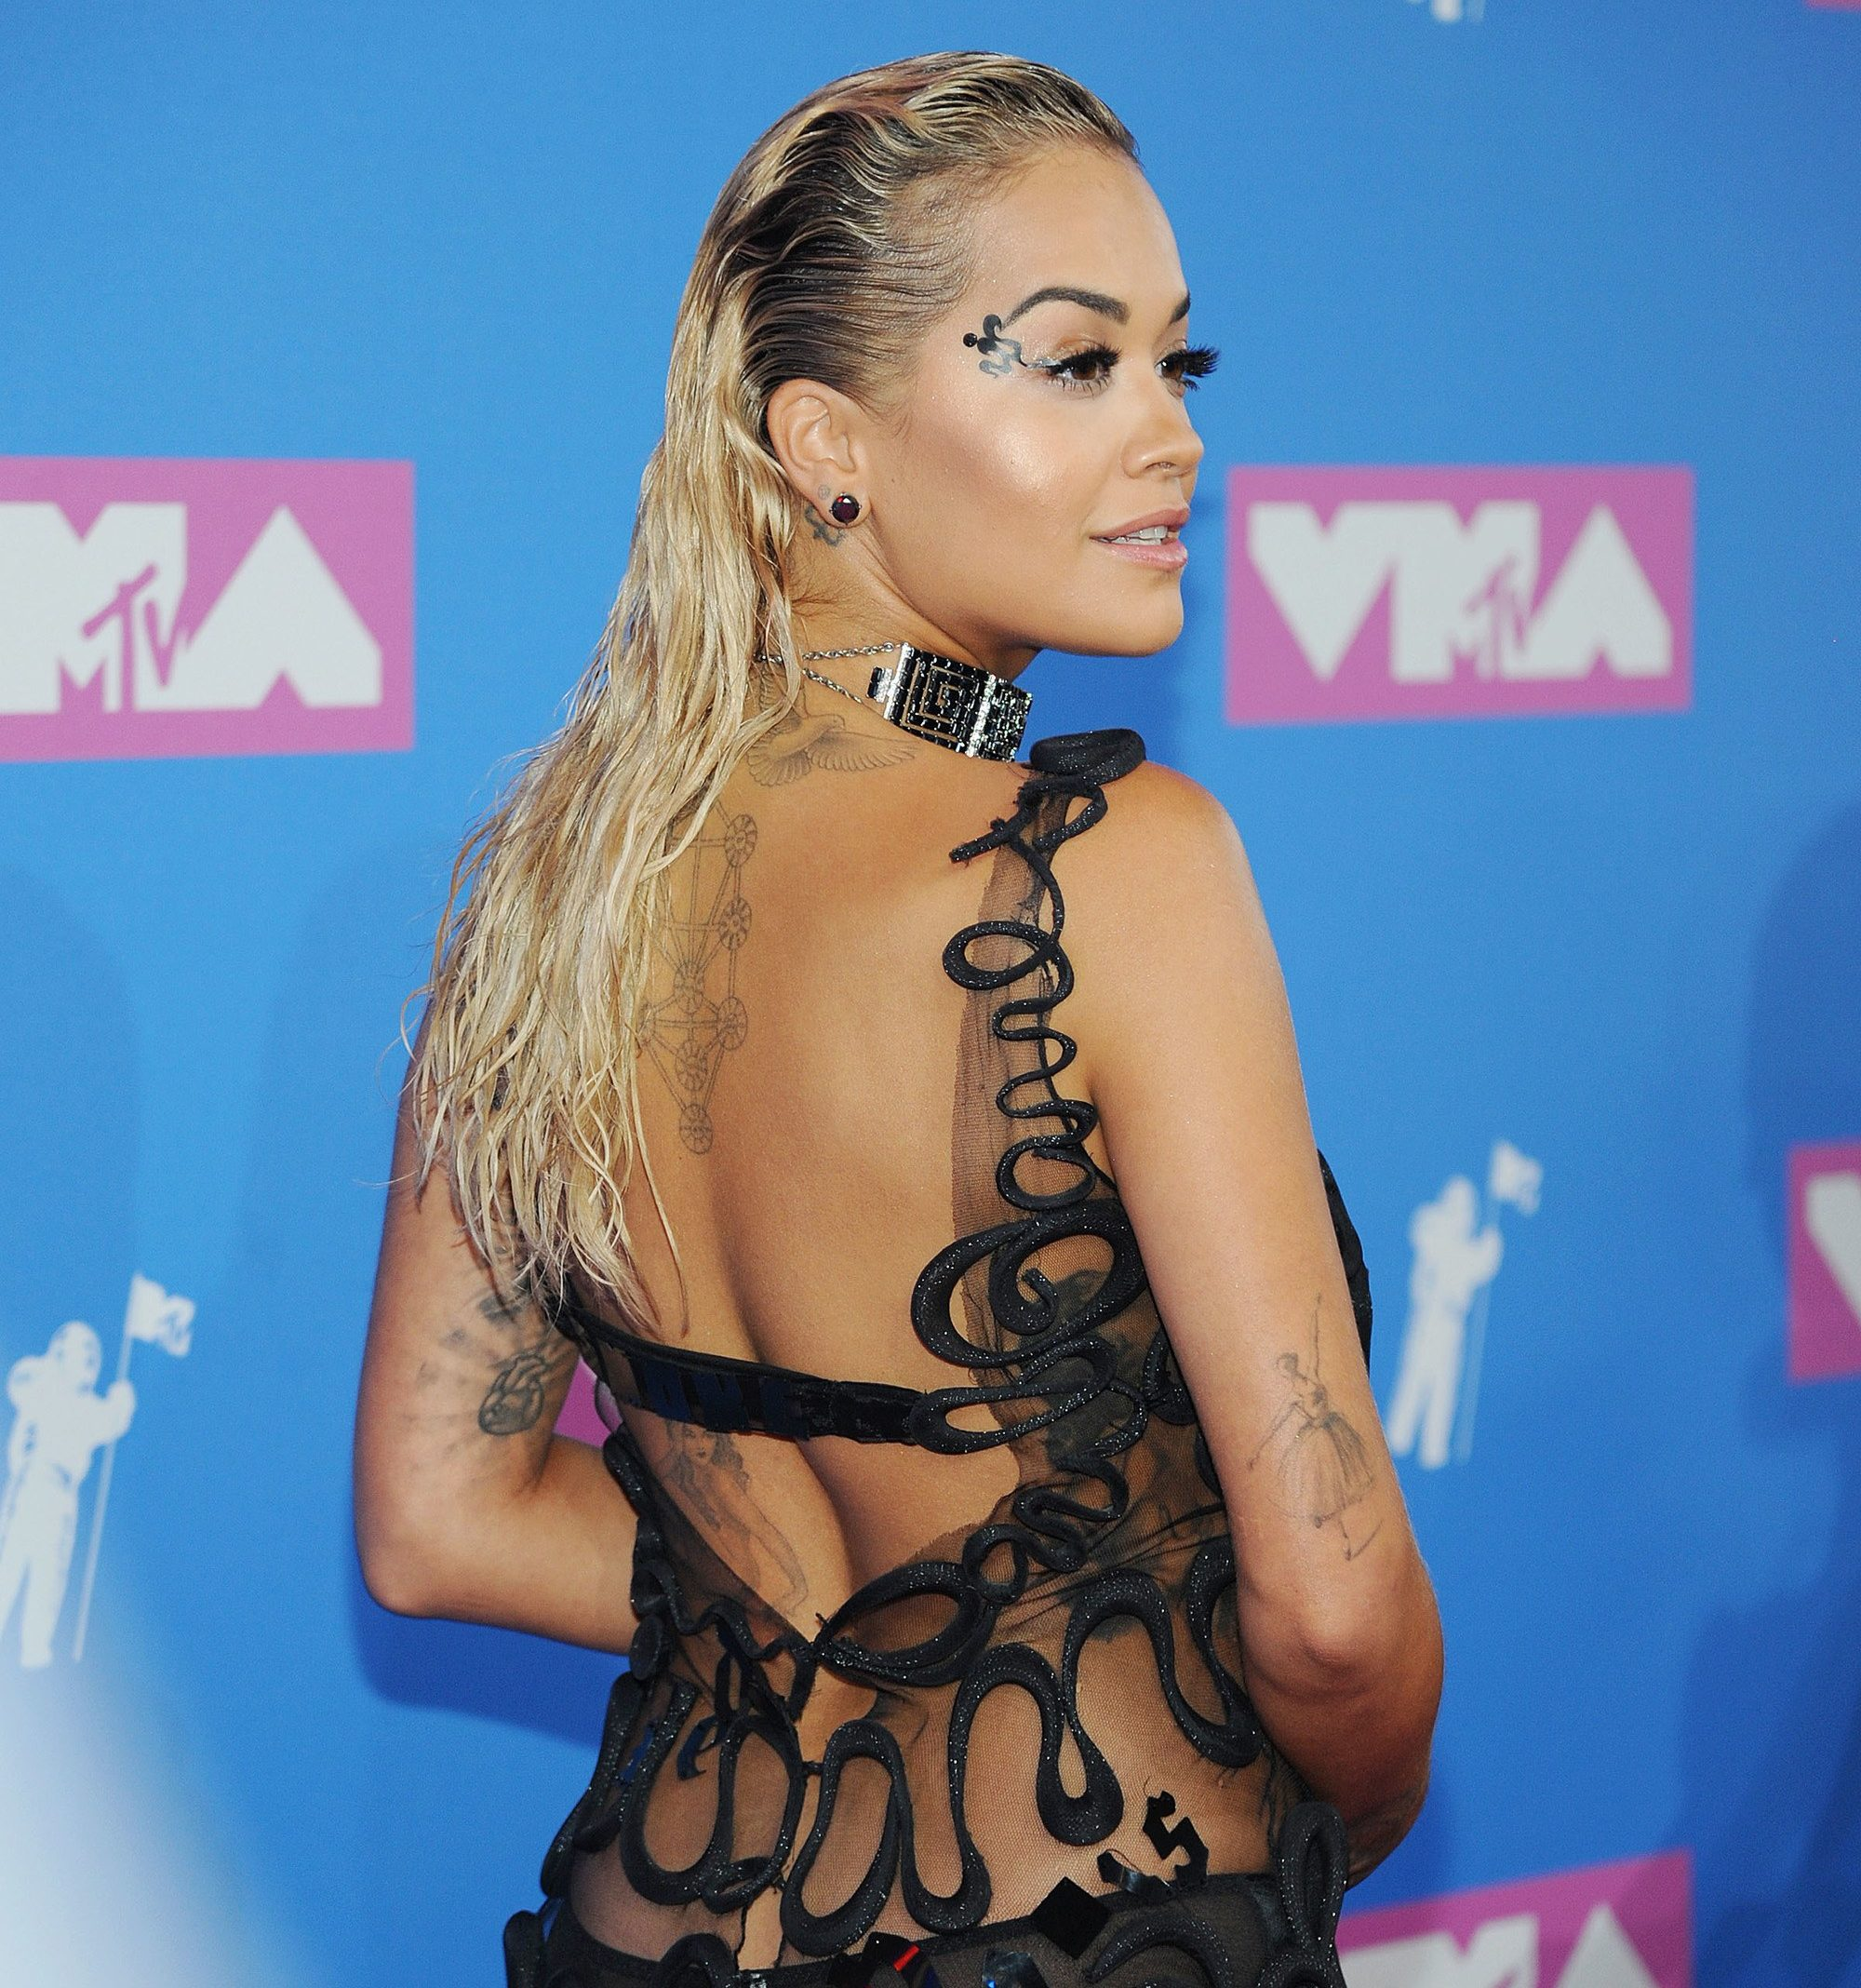 Close up shot of Rita Ora with bleached blonde wet look hair on the VMA red carpet.